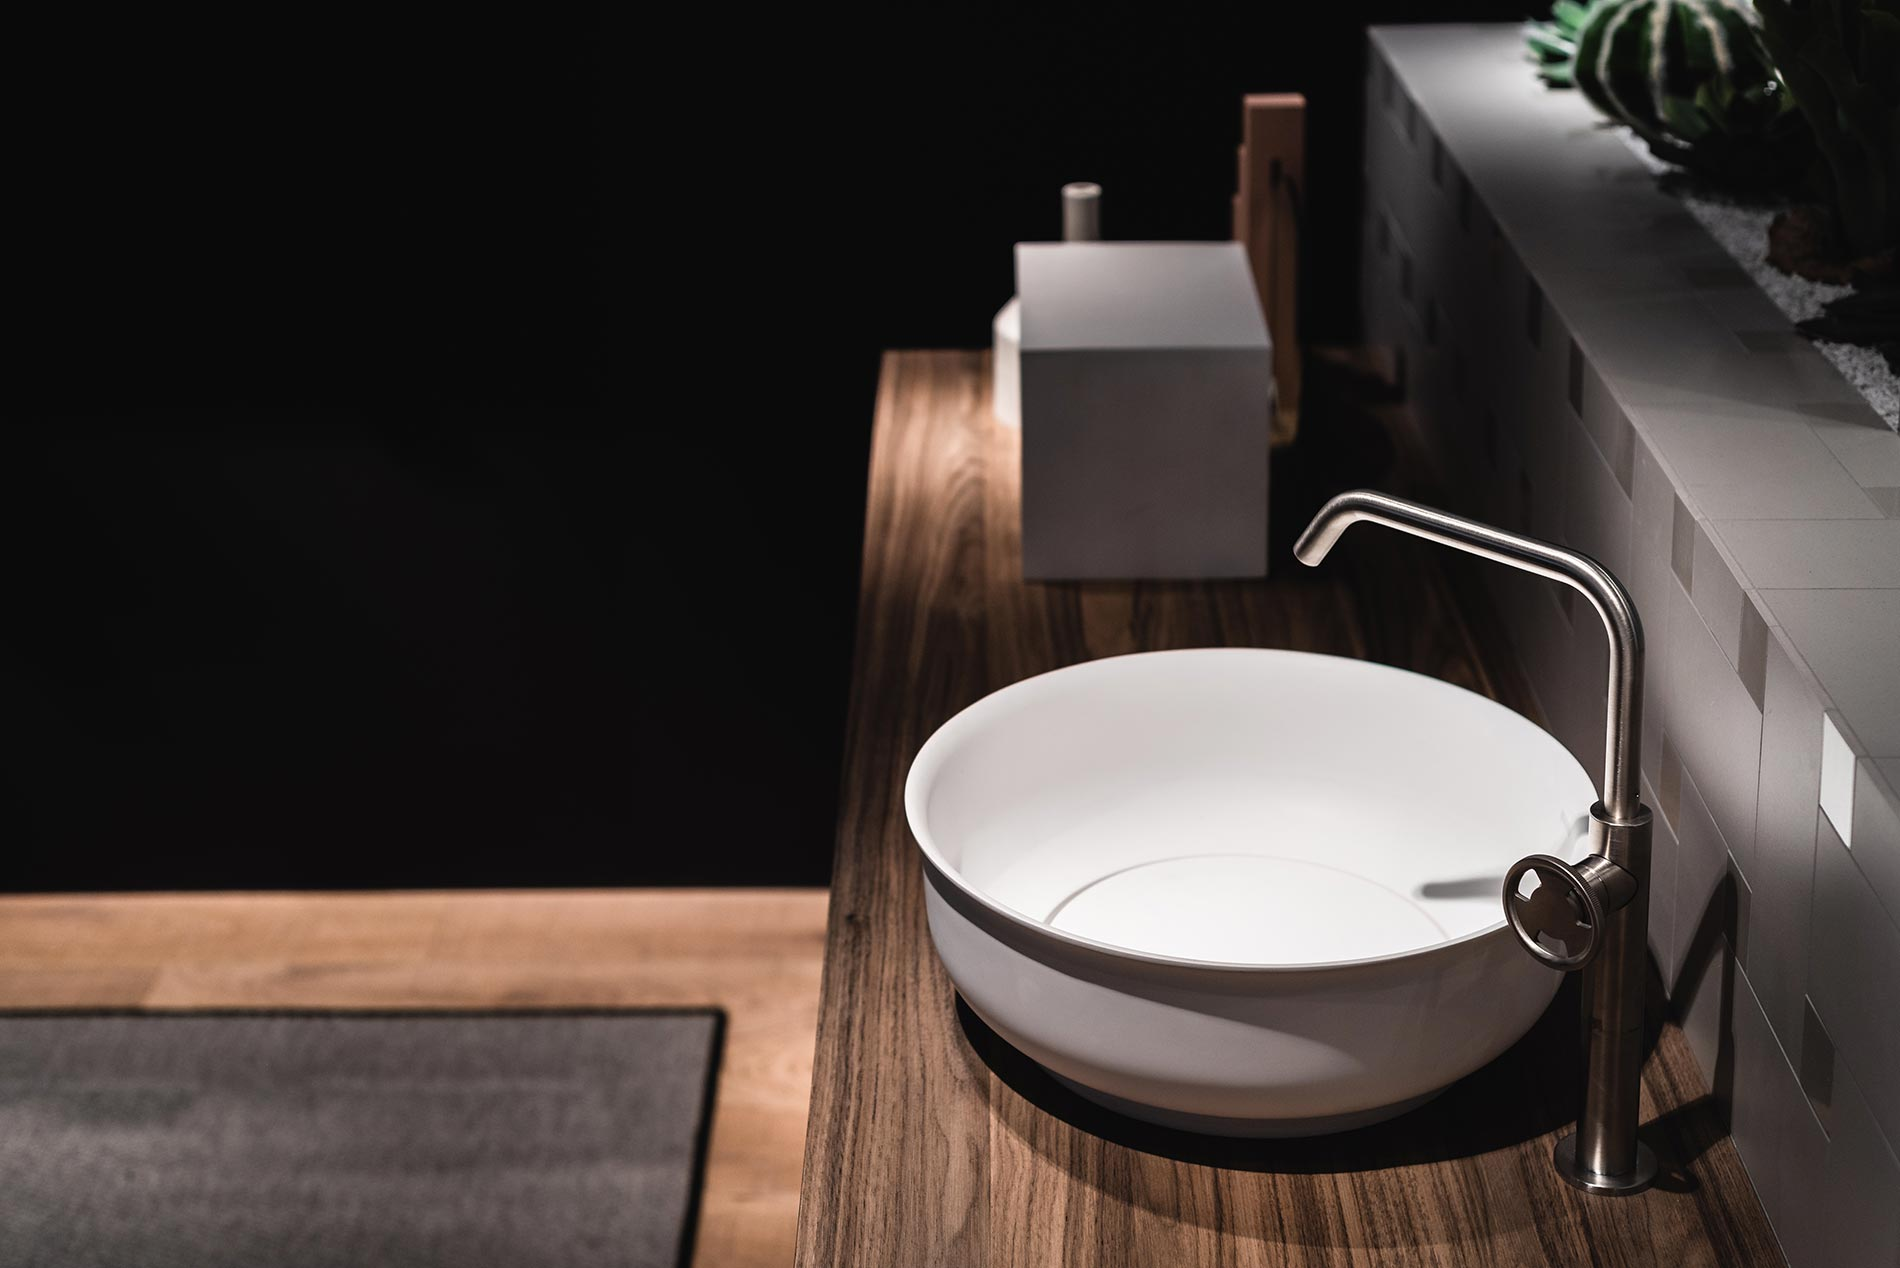 5 ALTERNATIVES TO THE TABLETOP WASHBASIN5 ALTERNATIVES TO THE TABLETOP WASHBASIN